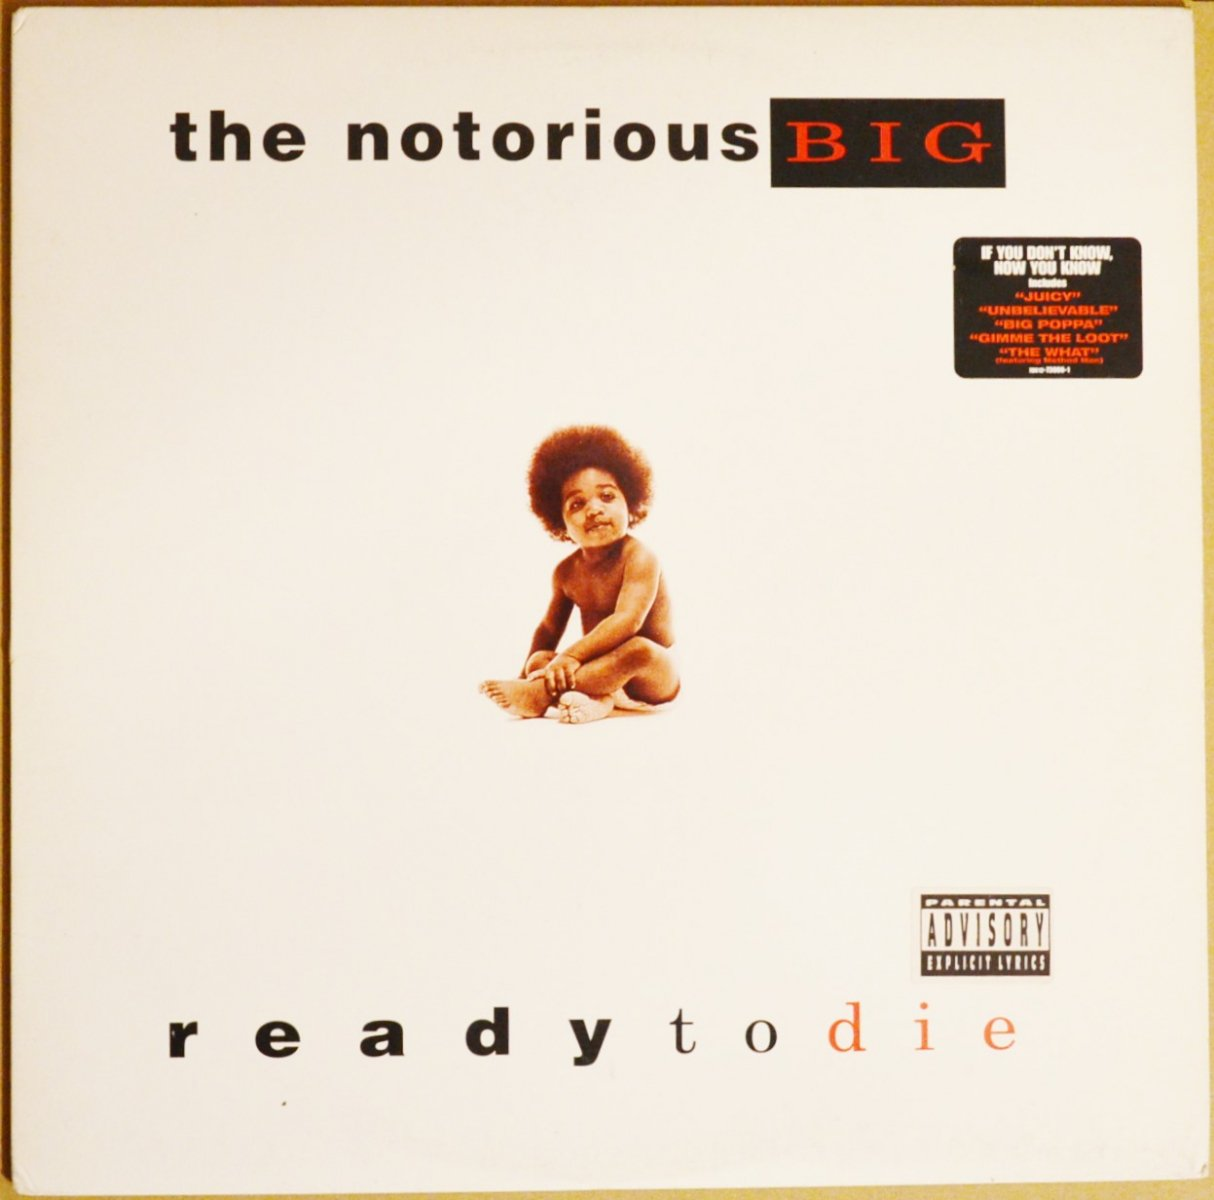 THE NOTORIOUS B.I.G. / READY TO DIE (1LP)